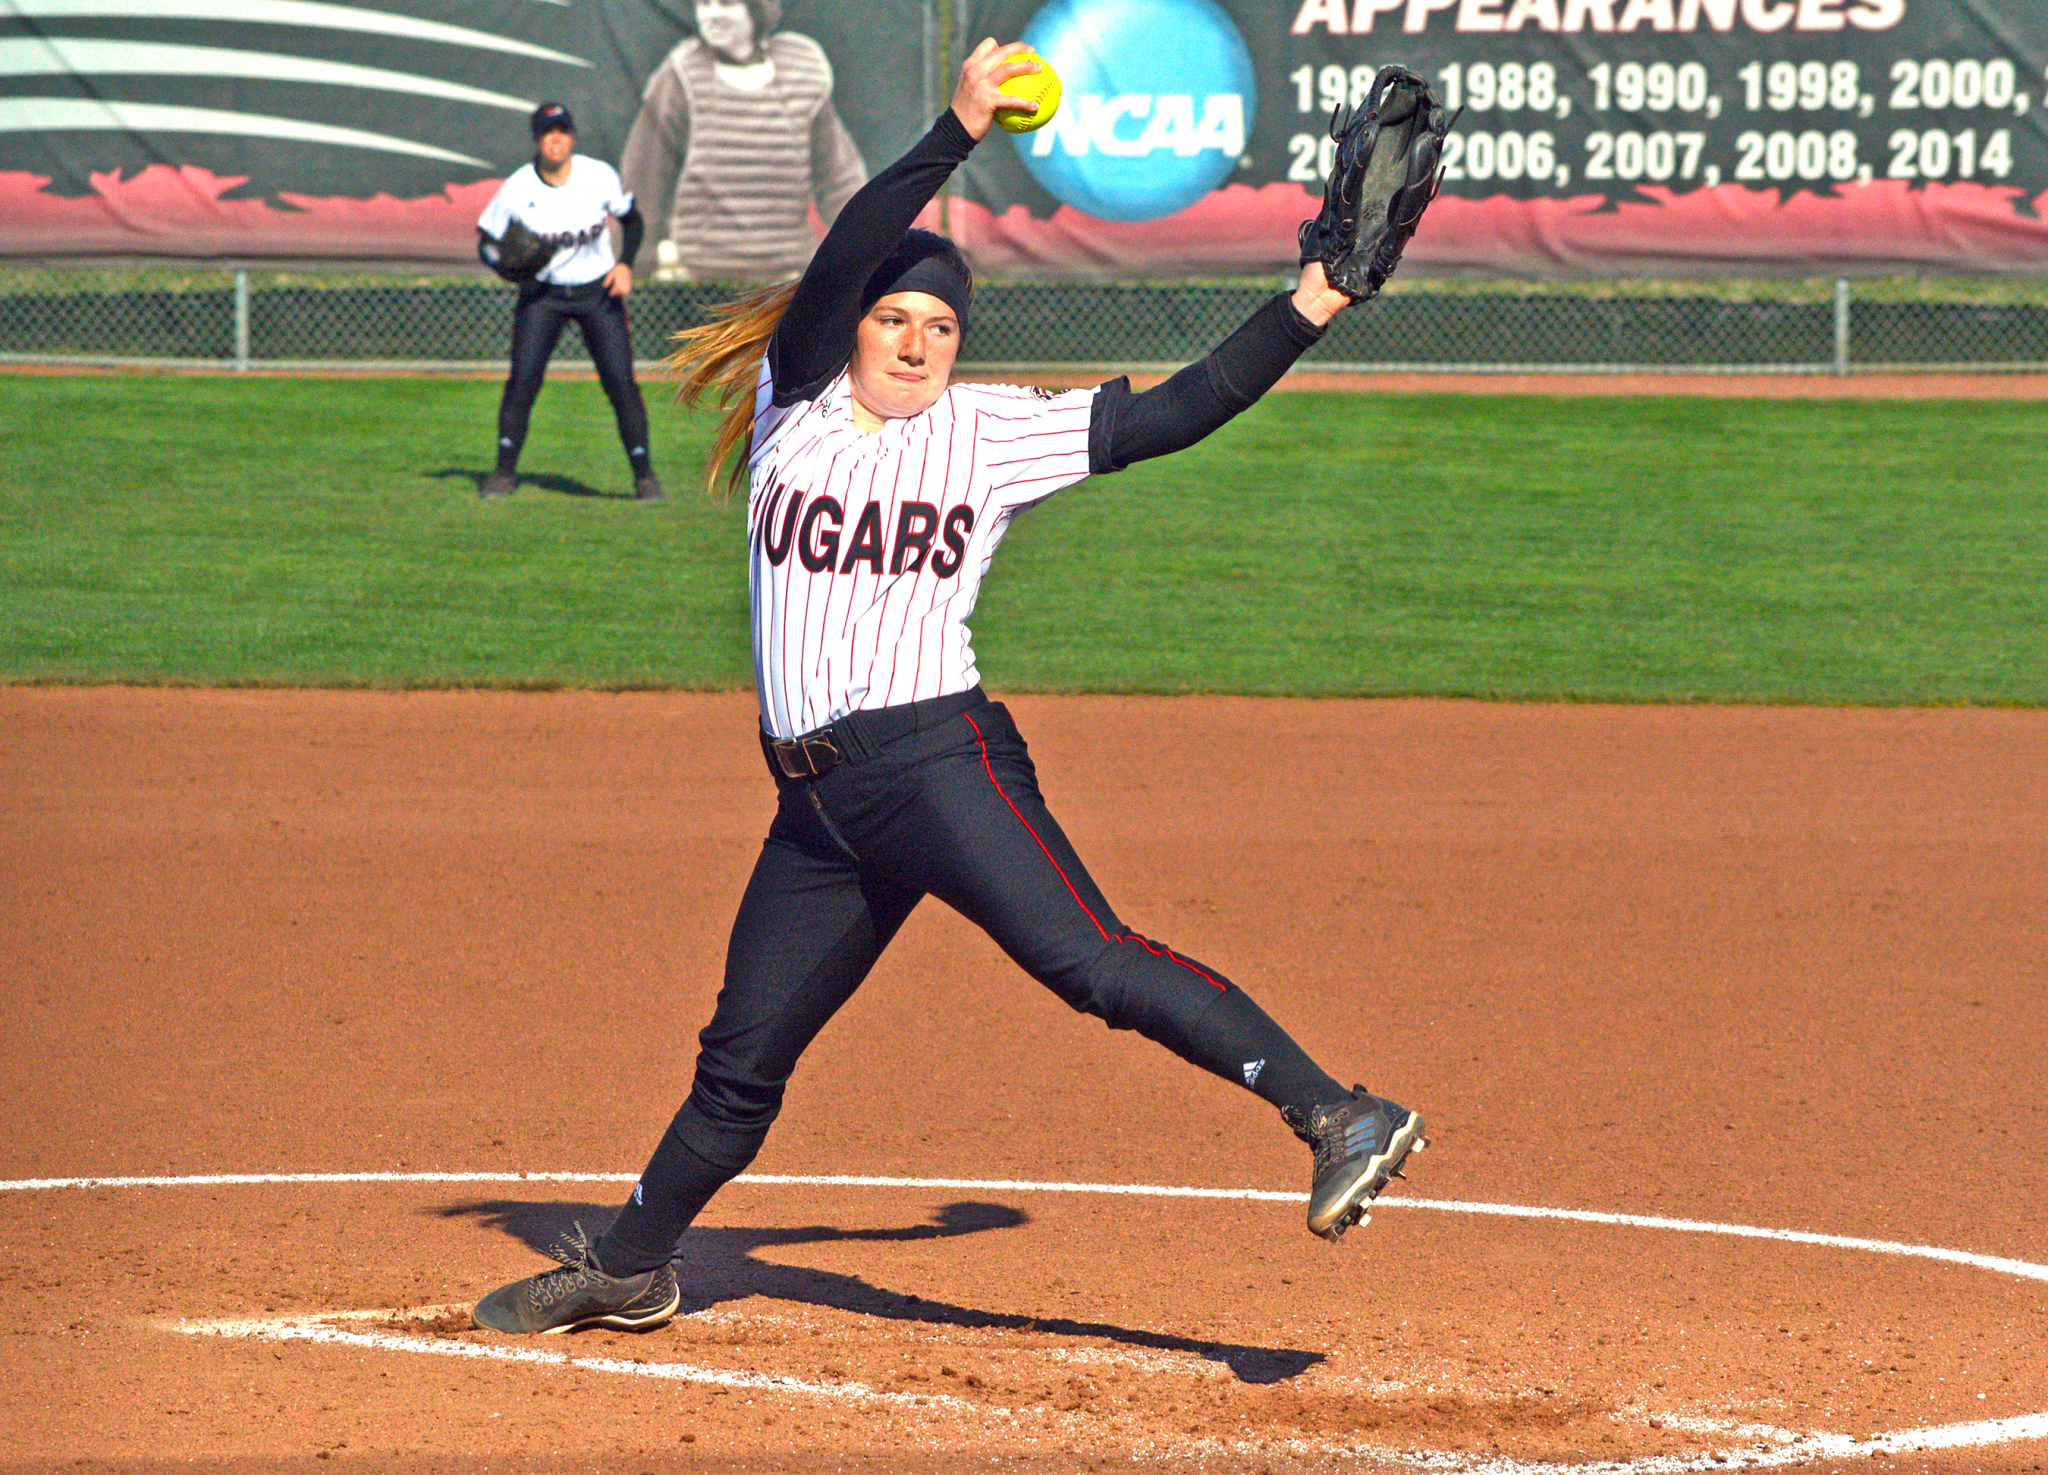 Softball Cougars Blanked By Illini In Home Opener The Circuit Board Baseball Pitching Machine Hitting Machines Edwardsville Intelligencer